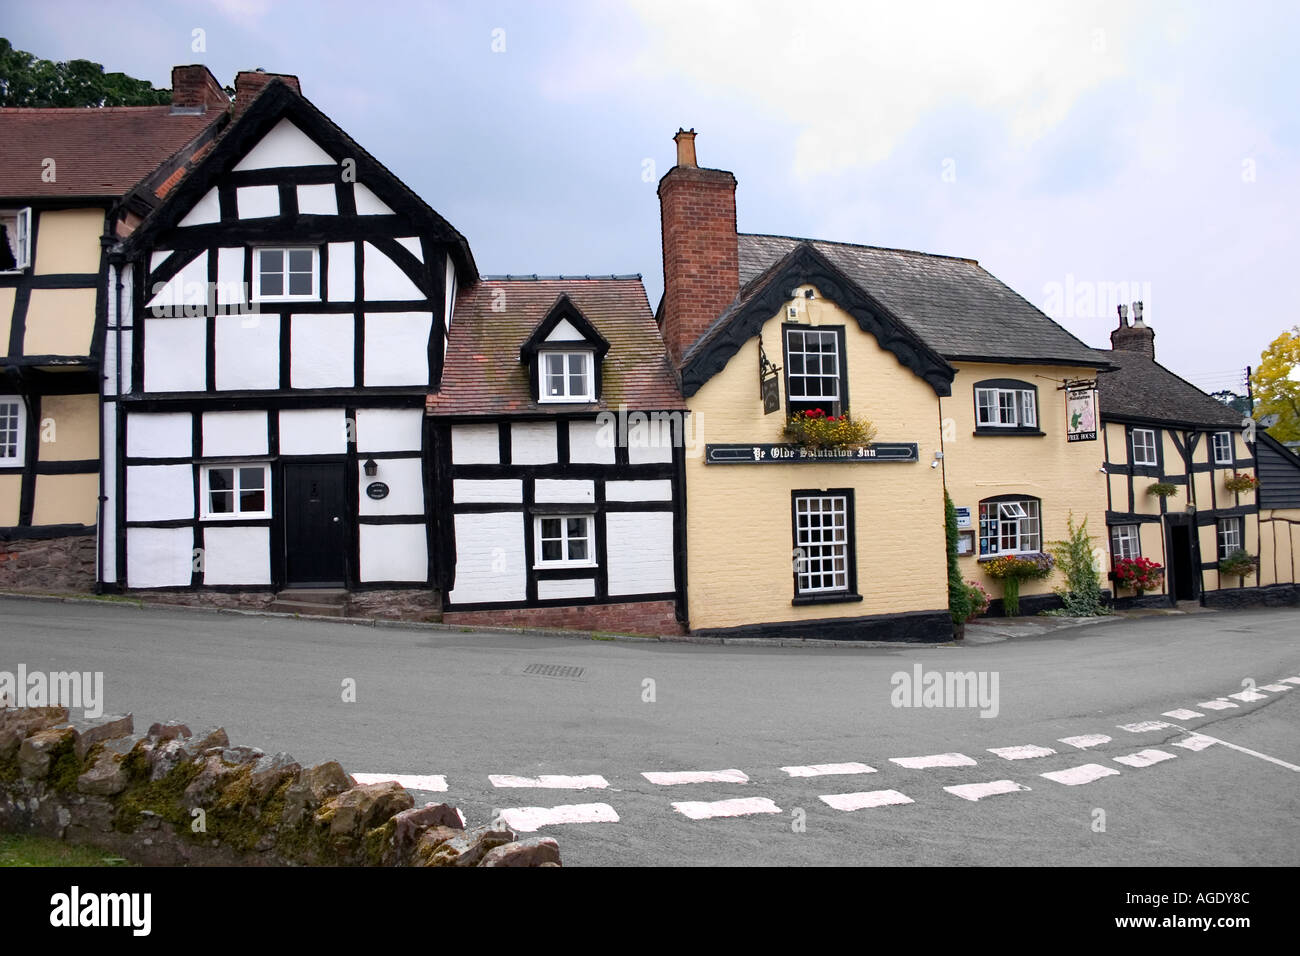 Timbered Houses and Pub Weobley Herefordshire - Stock Image